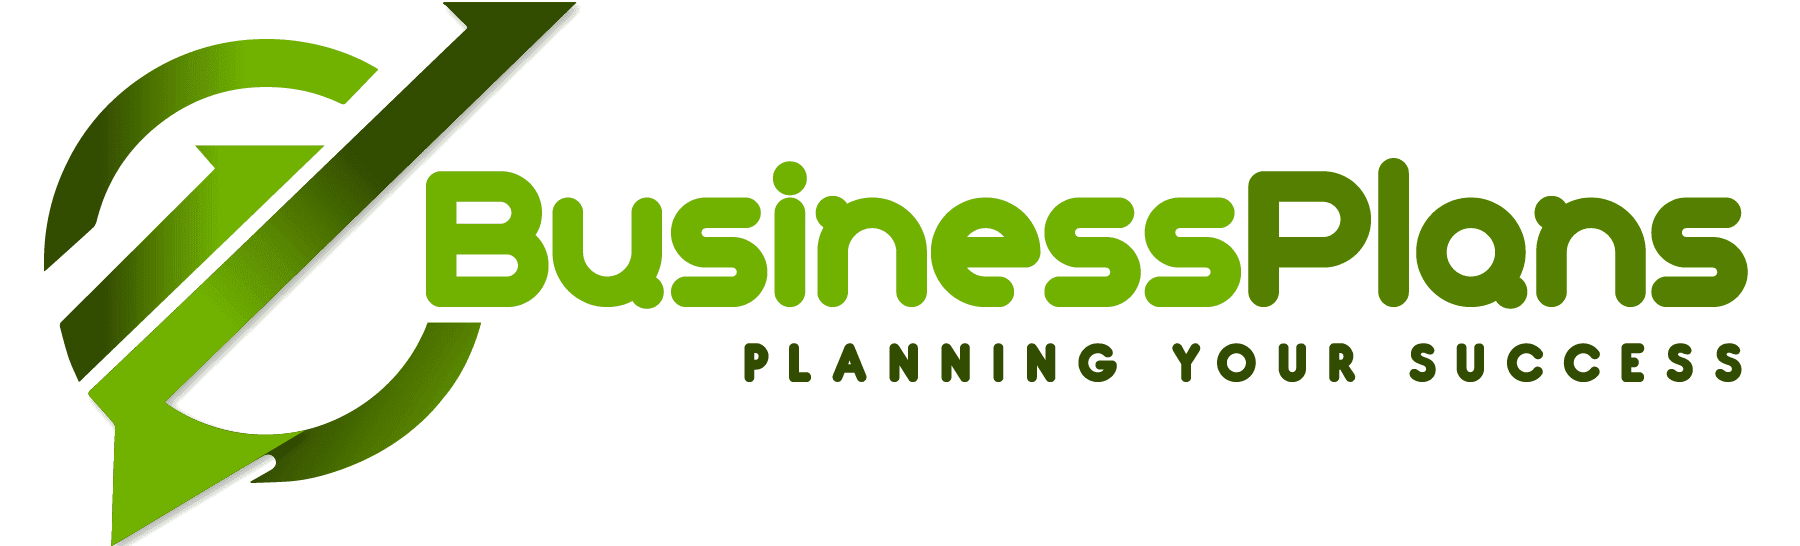 Start Up Business Plan Detailed Specification | 1 Business Plans ...